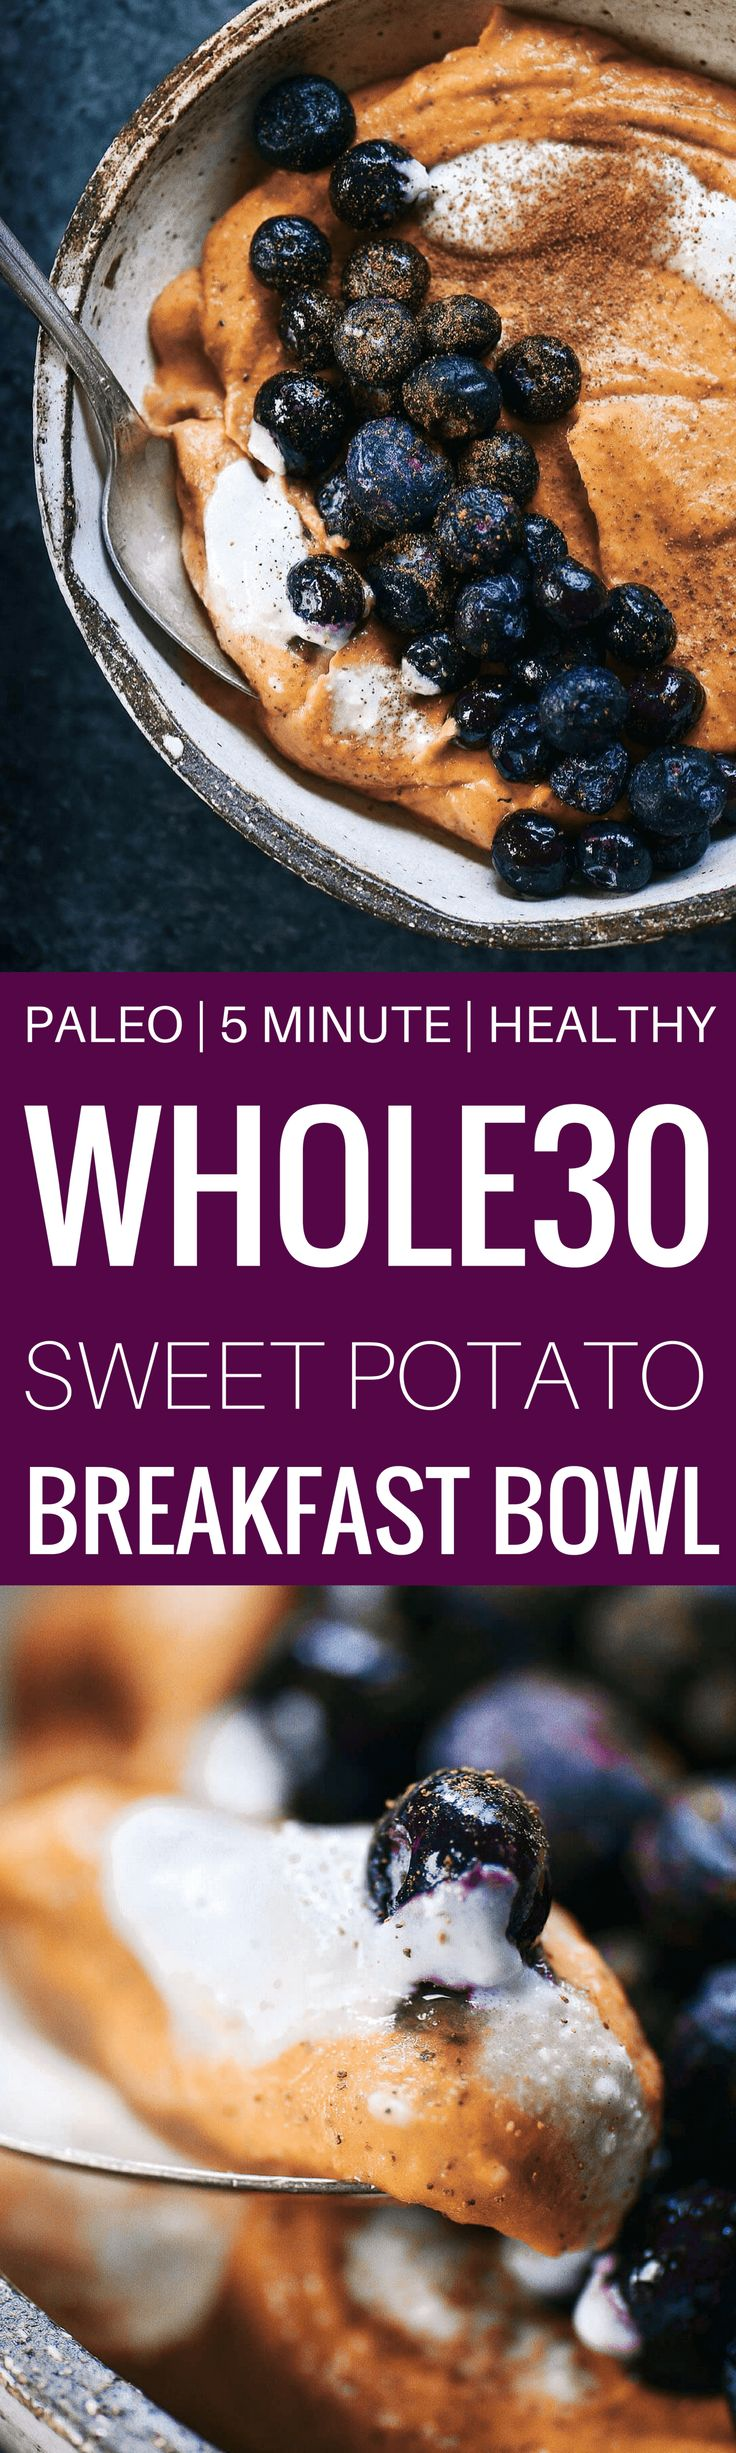 102 calorie whole30 and paleo breakfast! Only takes 3 ingredients and a few minutes to make. Loaded with healthy fats and protein! Naturally sweetened with sweet potato. Creamy and addictively smooth. Whole30 breakfast ideas. Best whole30 breakfast recipes. whole30 meal plan. Easy whole30 dinner recipes. Easy whole30 dinner recipes. Whole30 recipes. Whole30 lunch. Whole30 meal planning. Whole30 meal prep. Healthy paleo meals. Healthy Whole30 recipes. Easy Whole30 recipes. Easy...